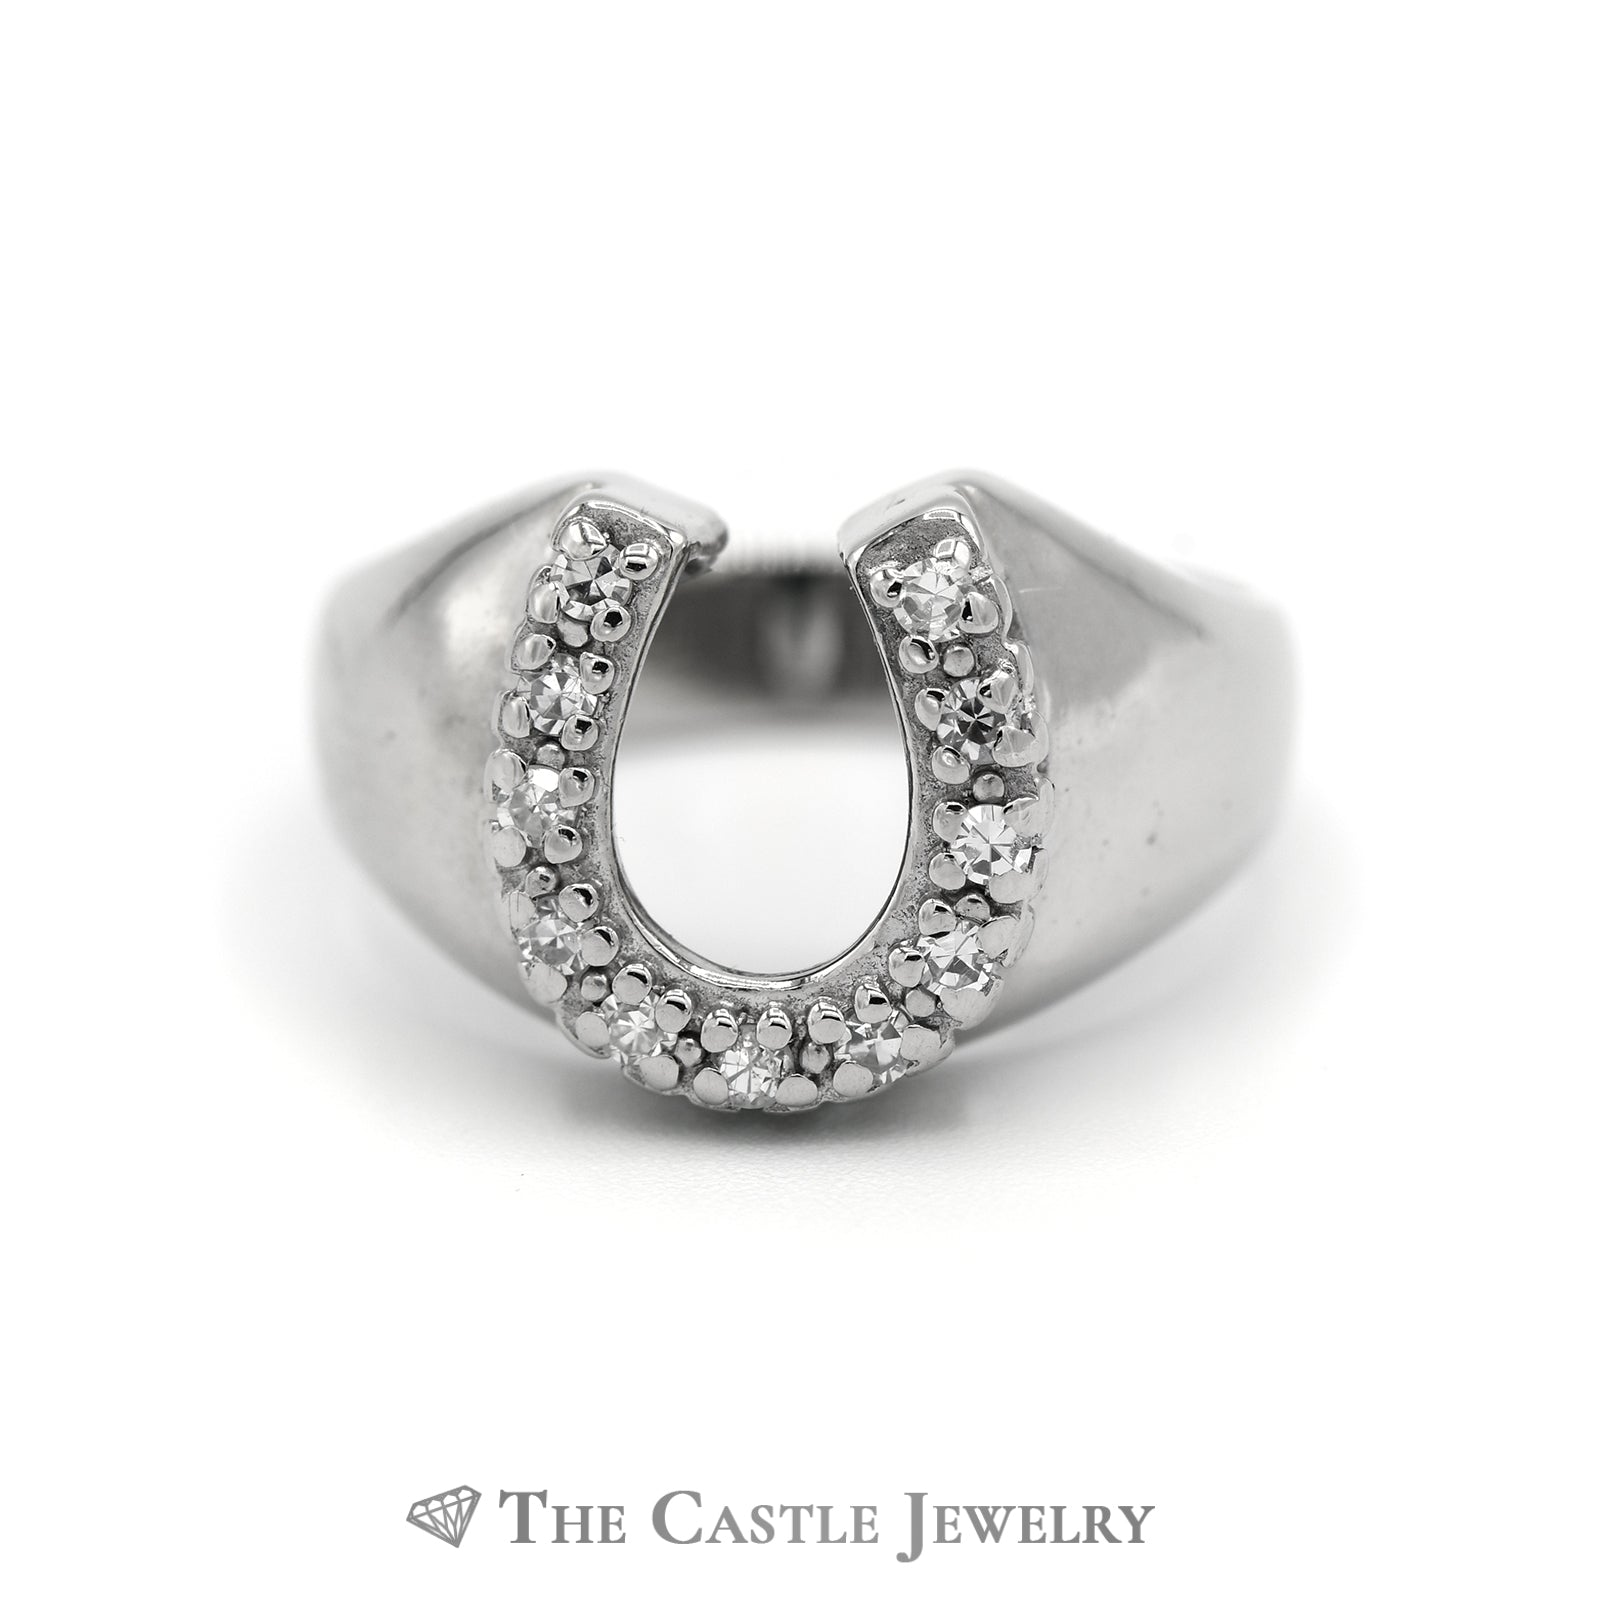 Round Diamond 1/4cttw Horse Shoe Ring in 14k White Gold Mounting